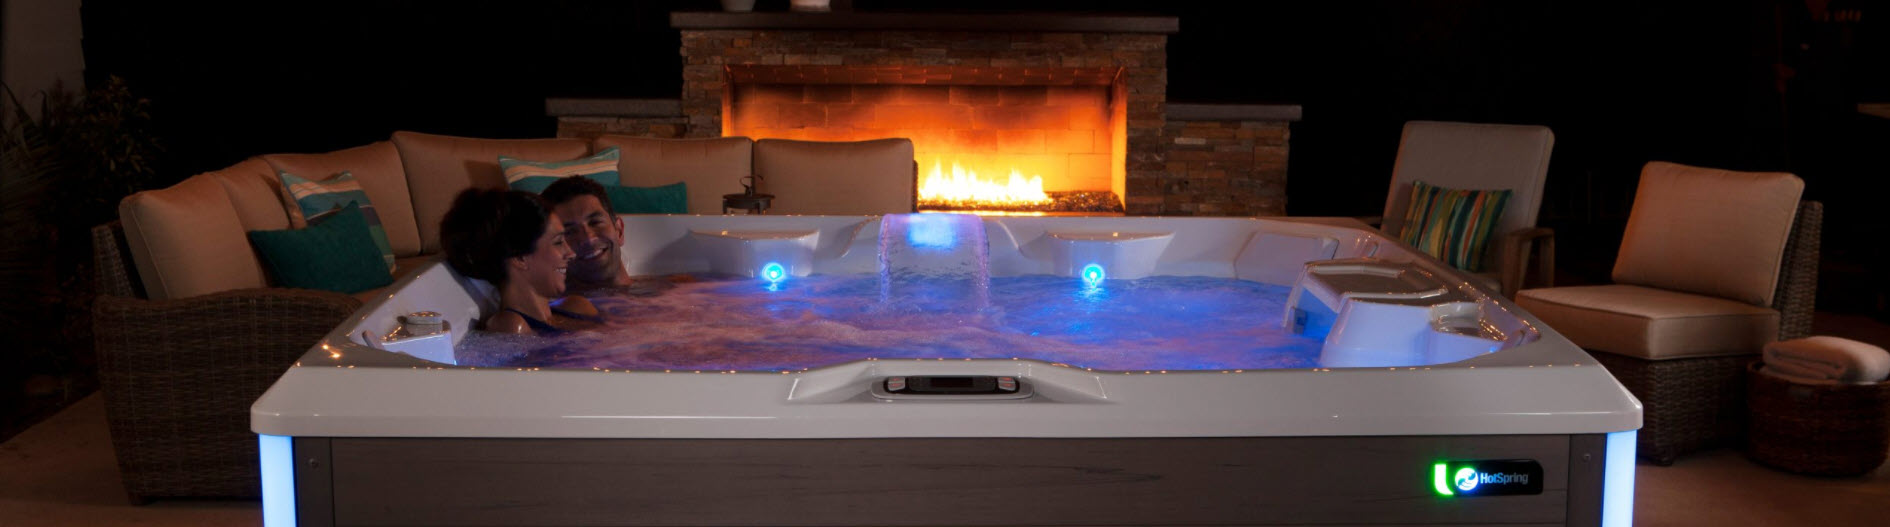 How a Salt Water Spa Boosts Relaxation, Hot Tub Sale Near Billings